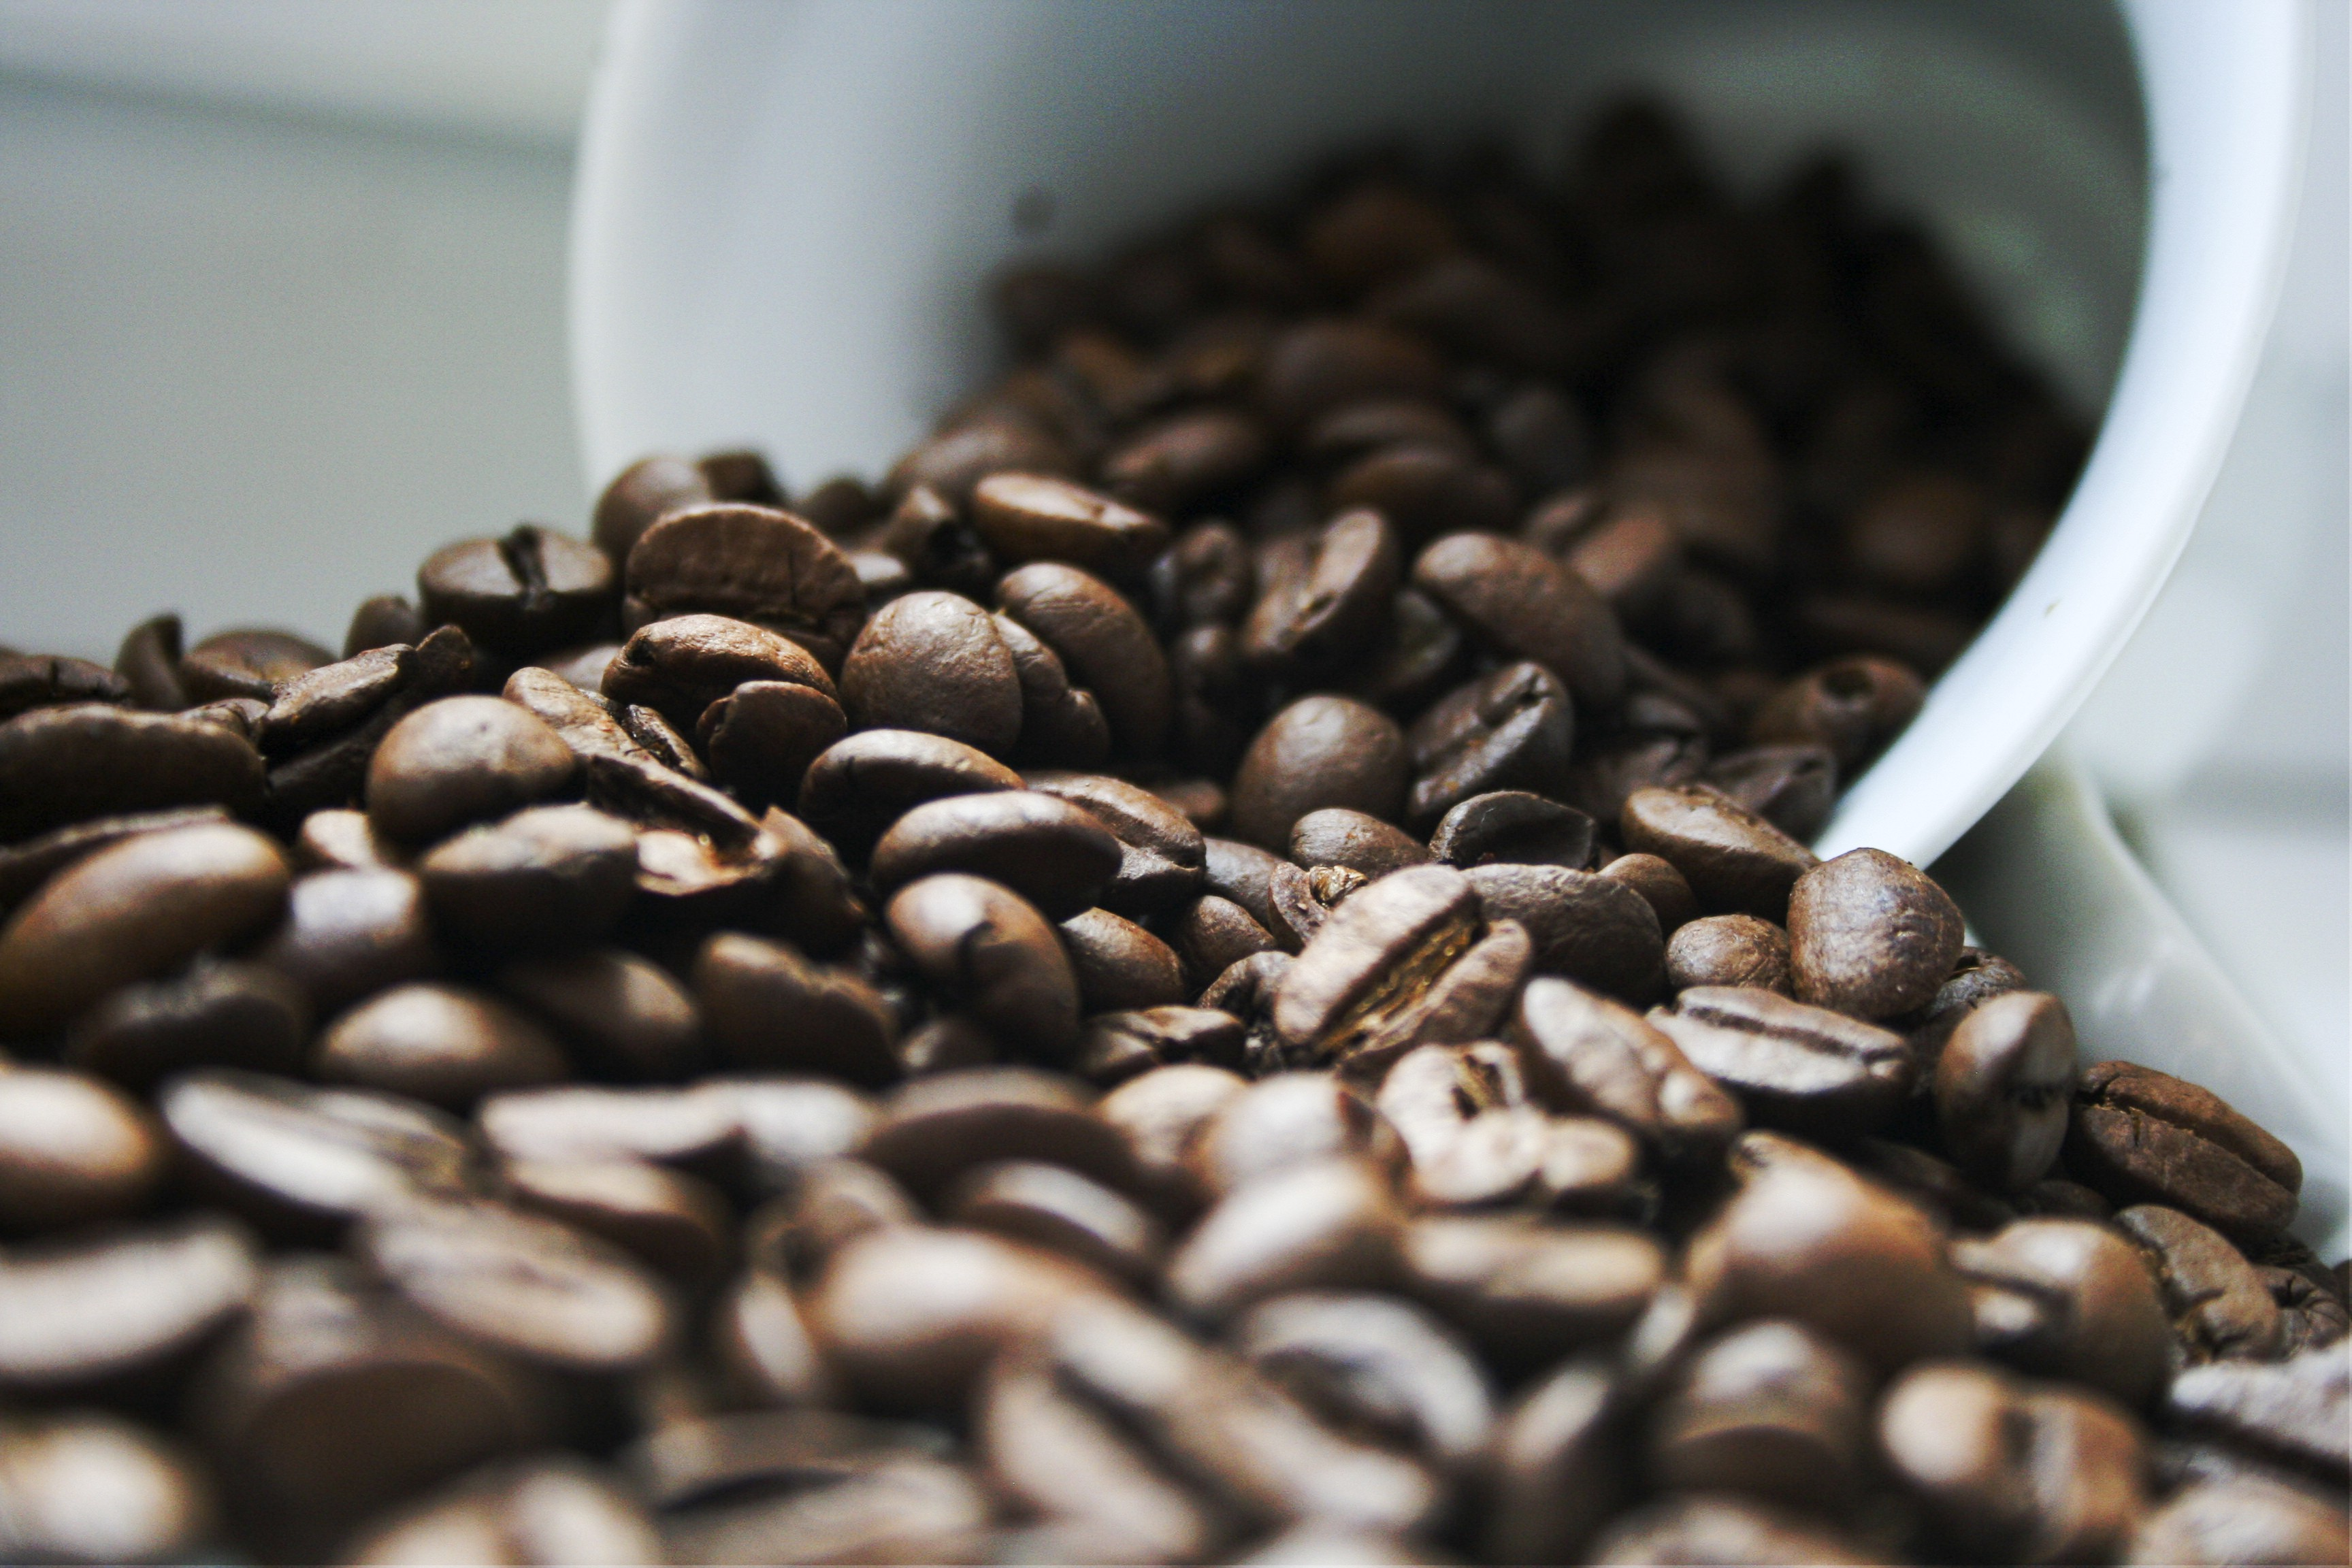 A overturned white cup, overflowing with glossy brown coffee beans.